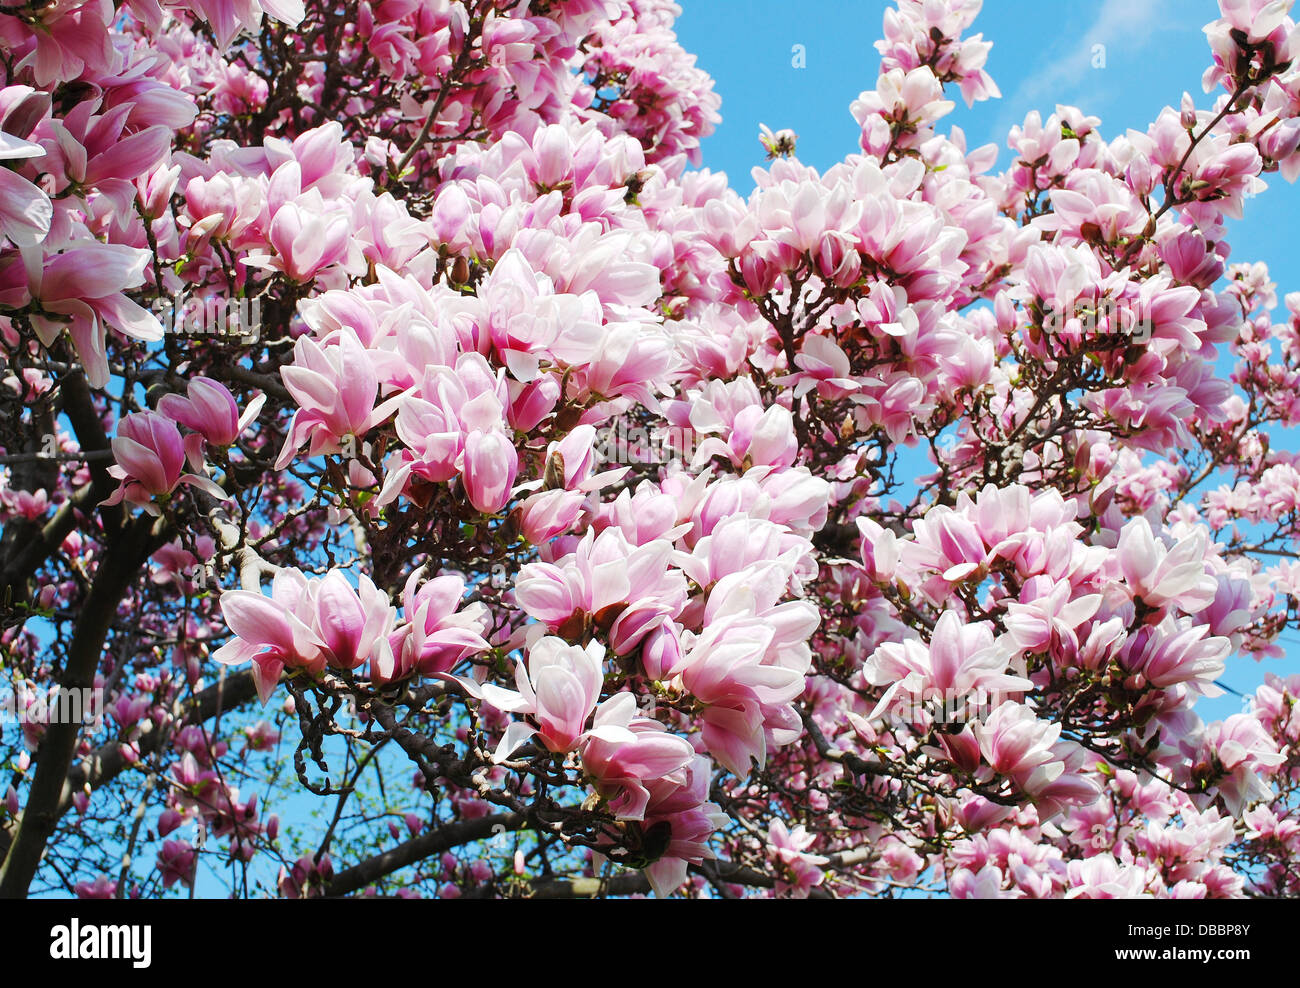 Magnolia Tree Flowers Blossom Closeup Isolated Blooming